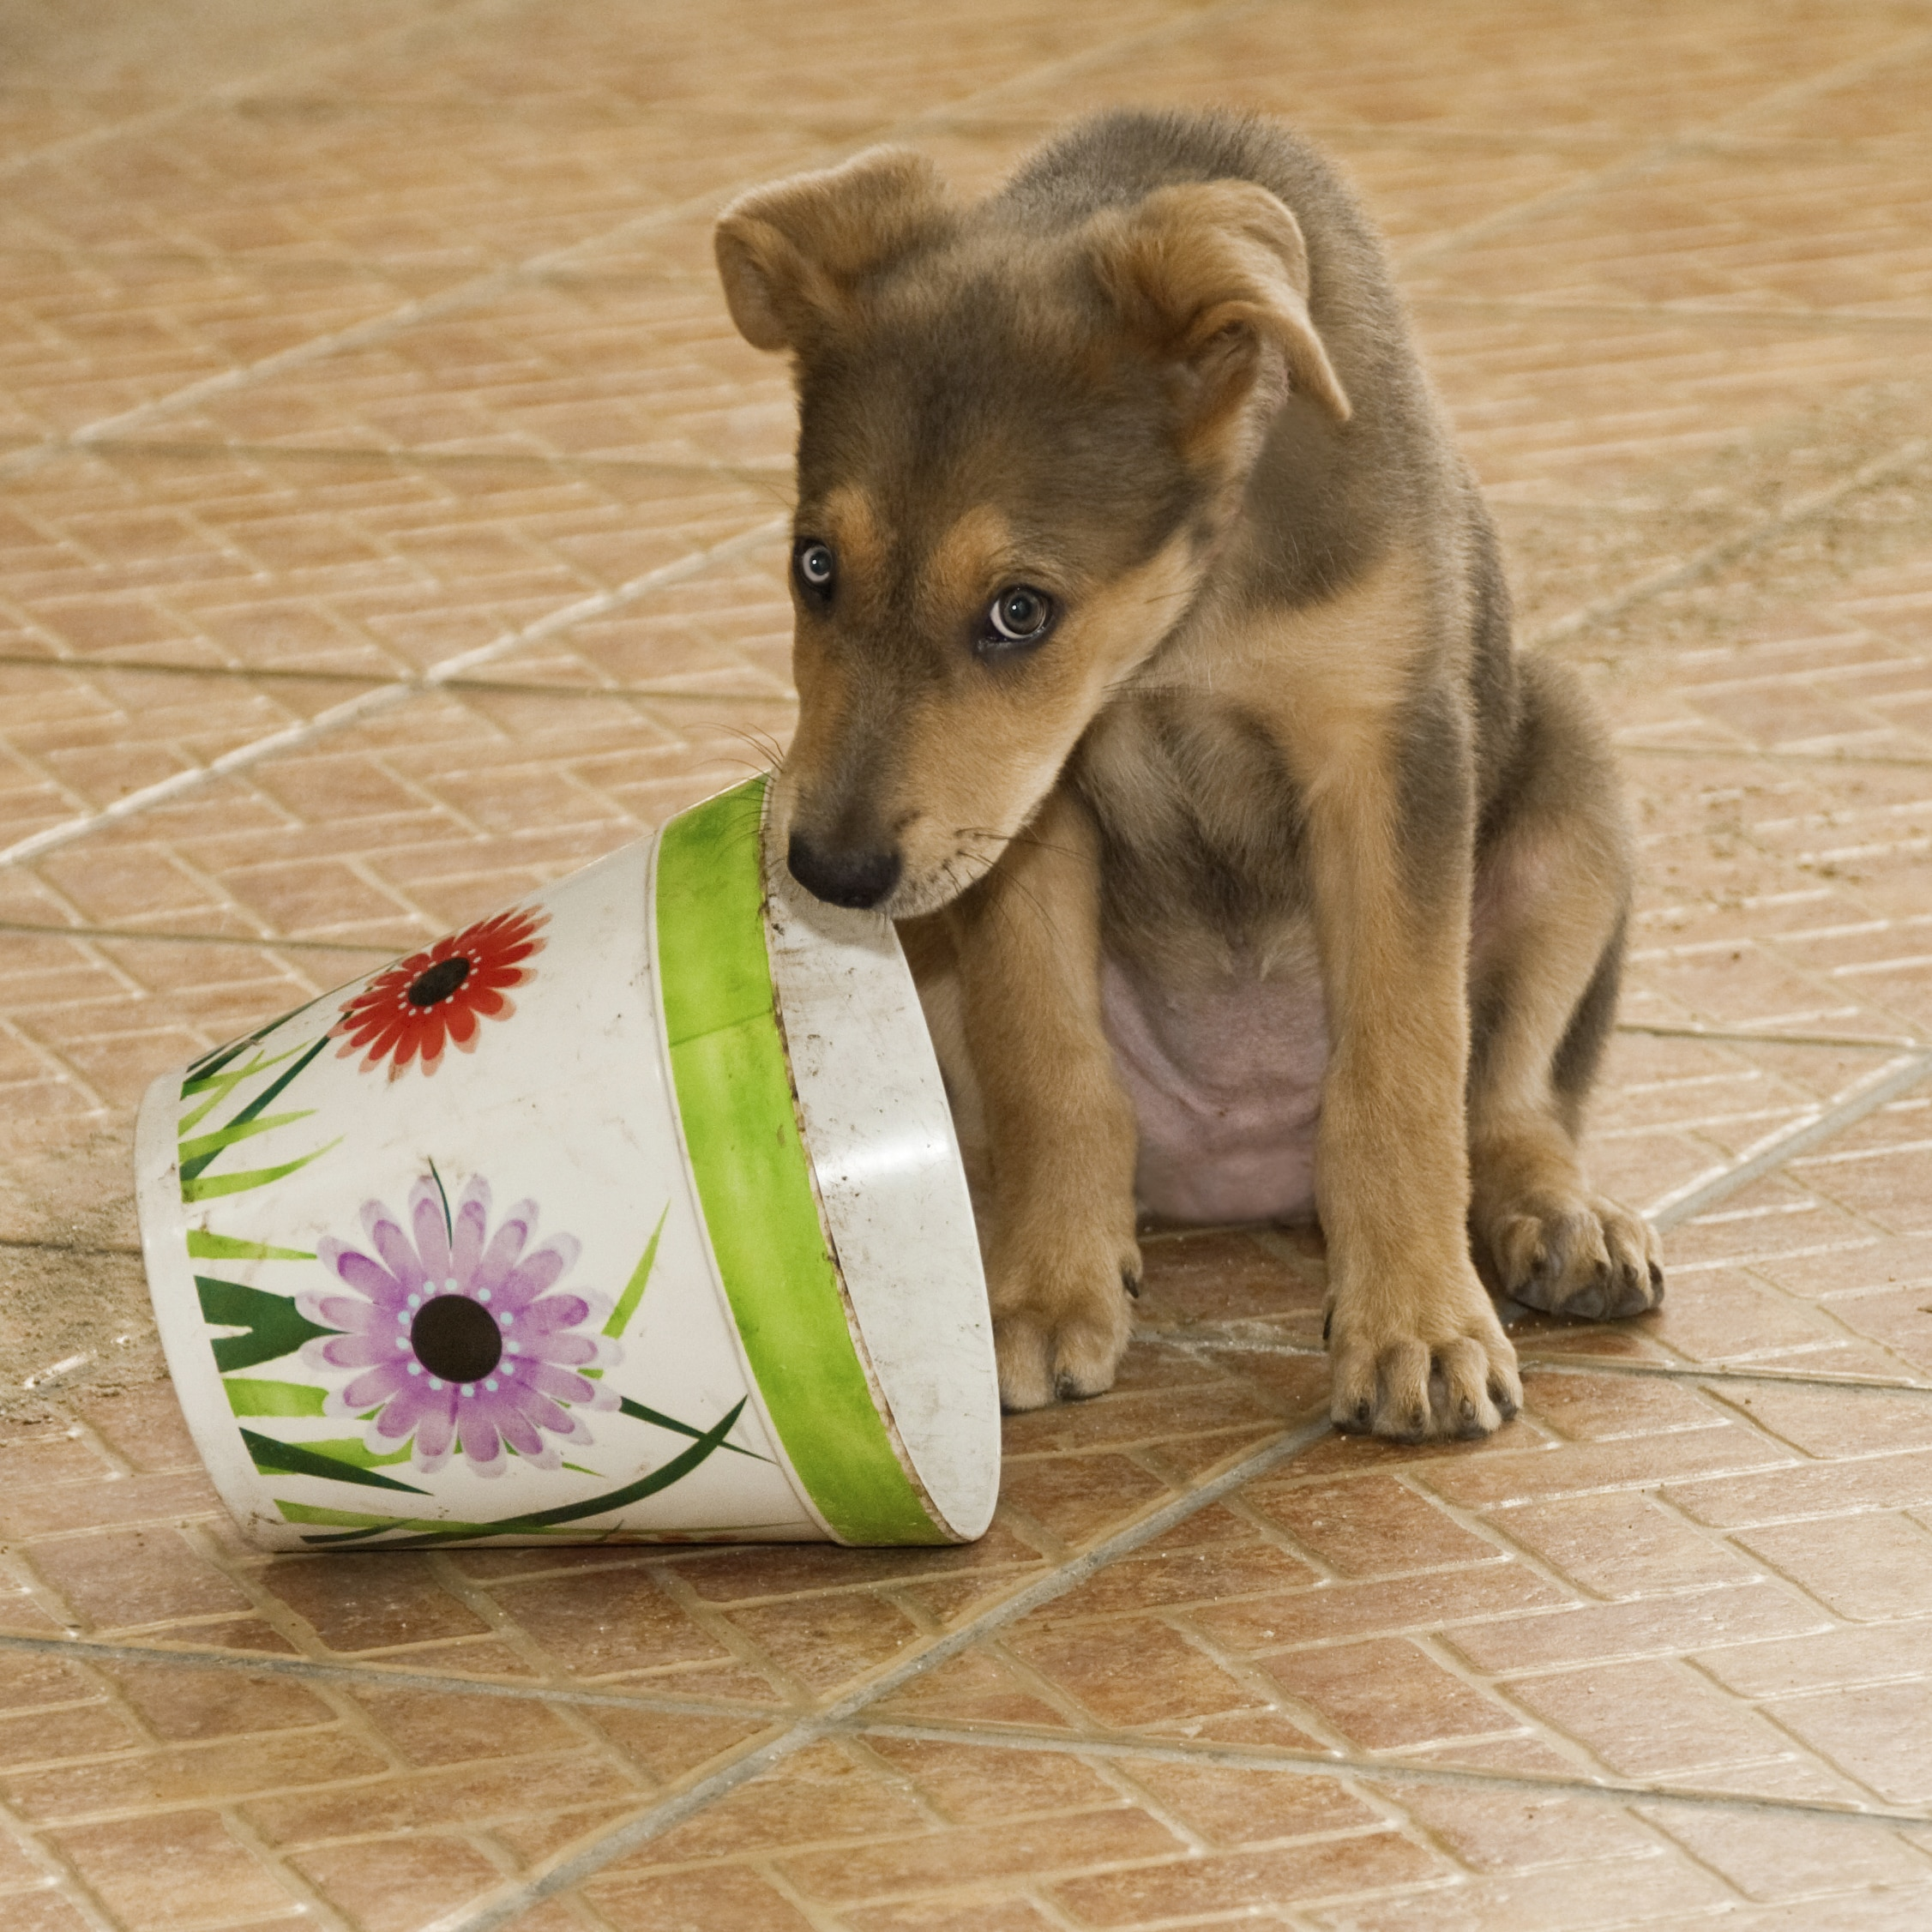 Puppy looking guilty next to flowered bucket.